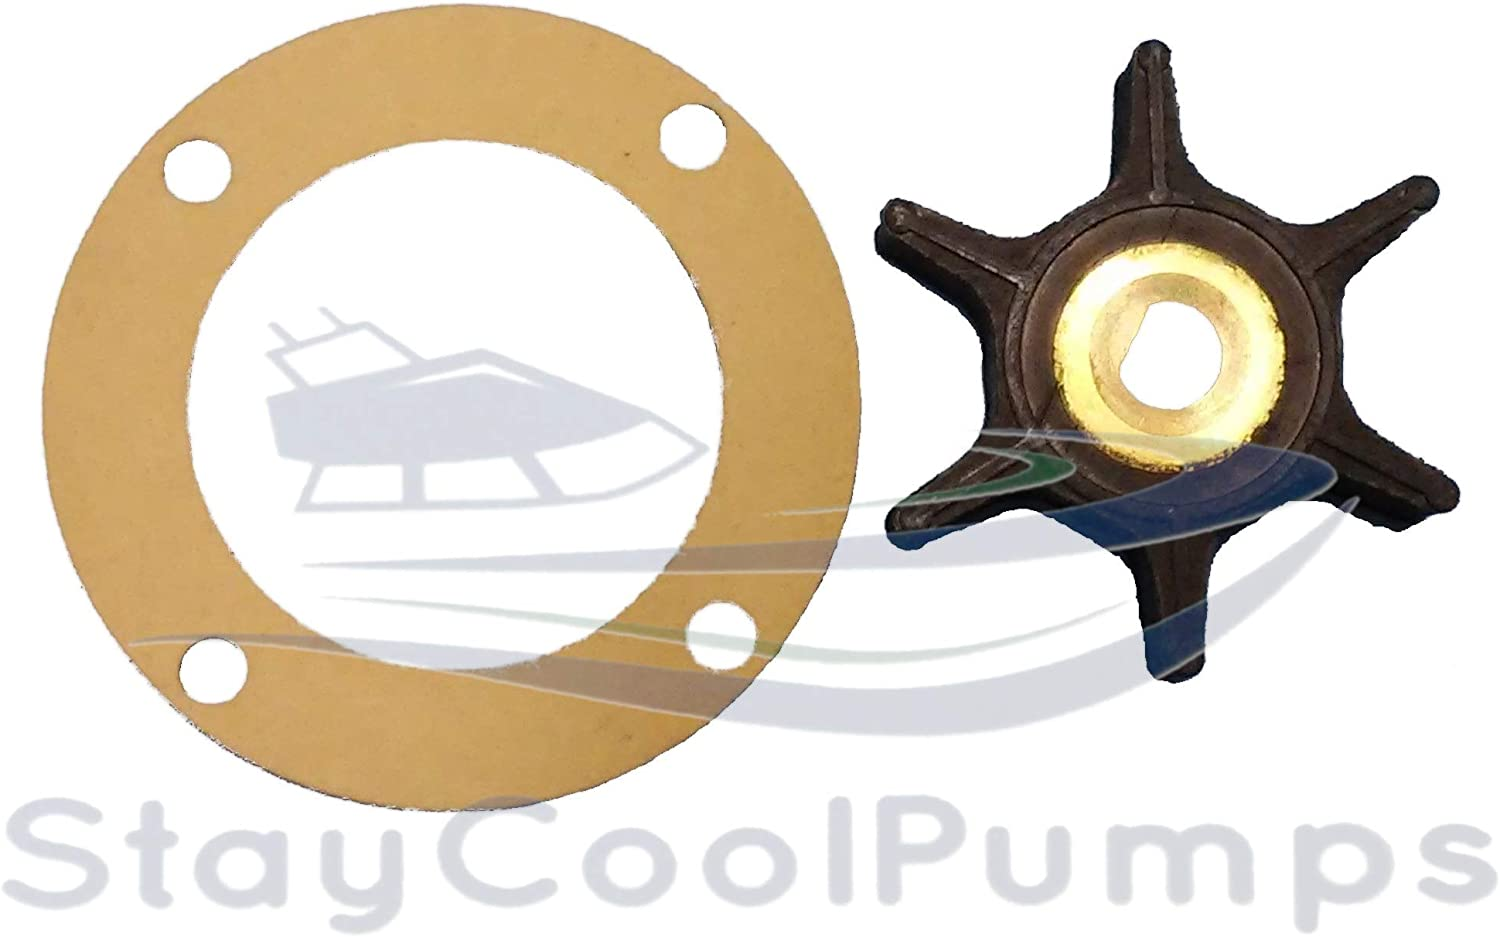 StayCoolPumps SCP Impeller Kit Fits Onan 131-0386 Pump 131-0257 170-3172 4 Hole Gasket MCCK 4.0 KW